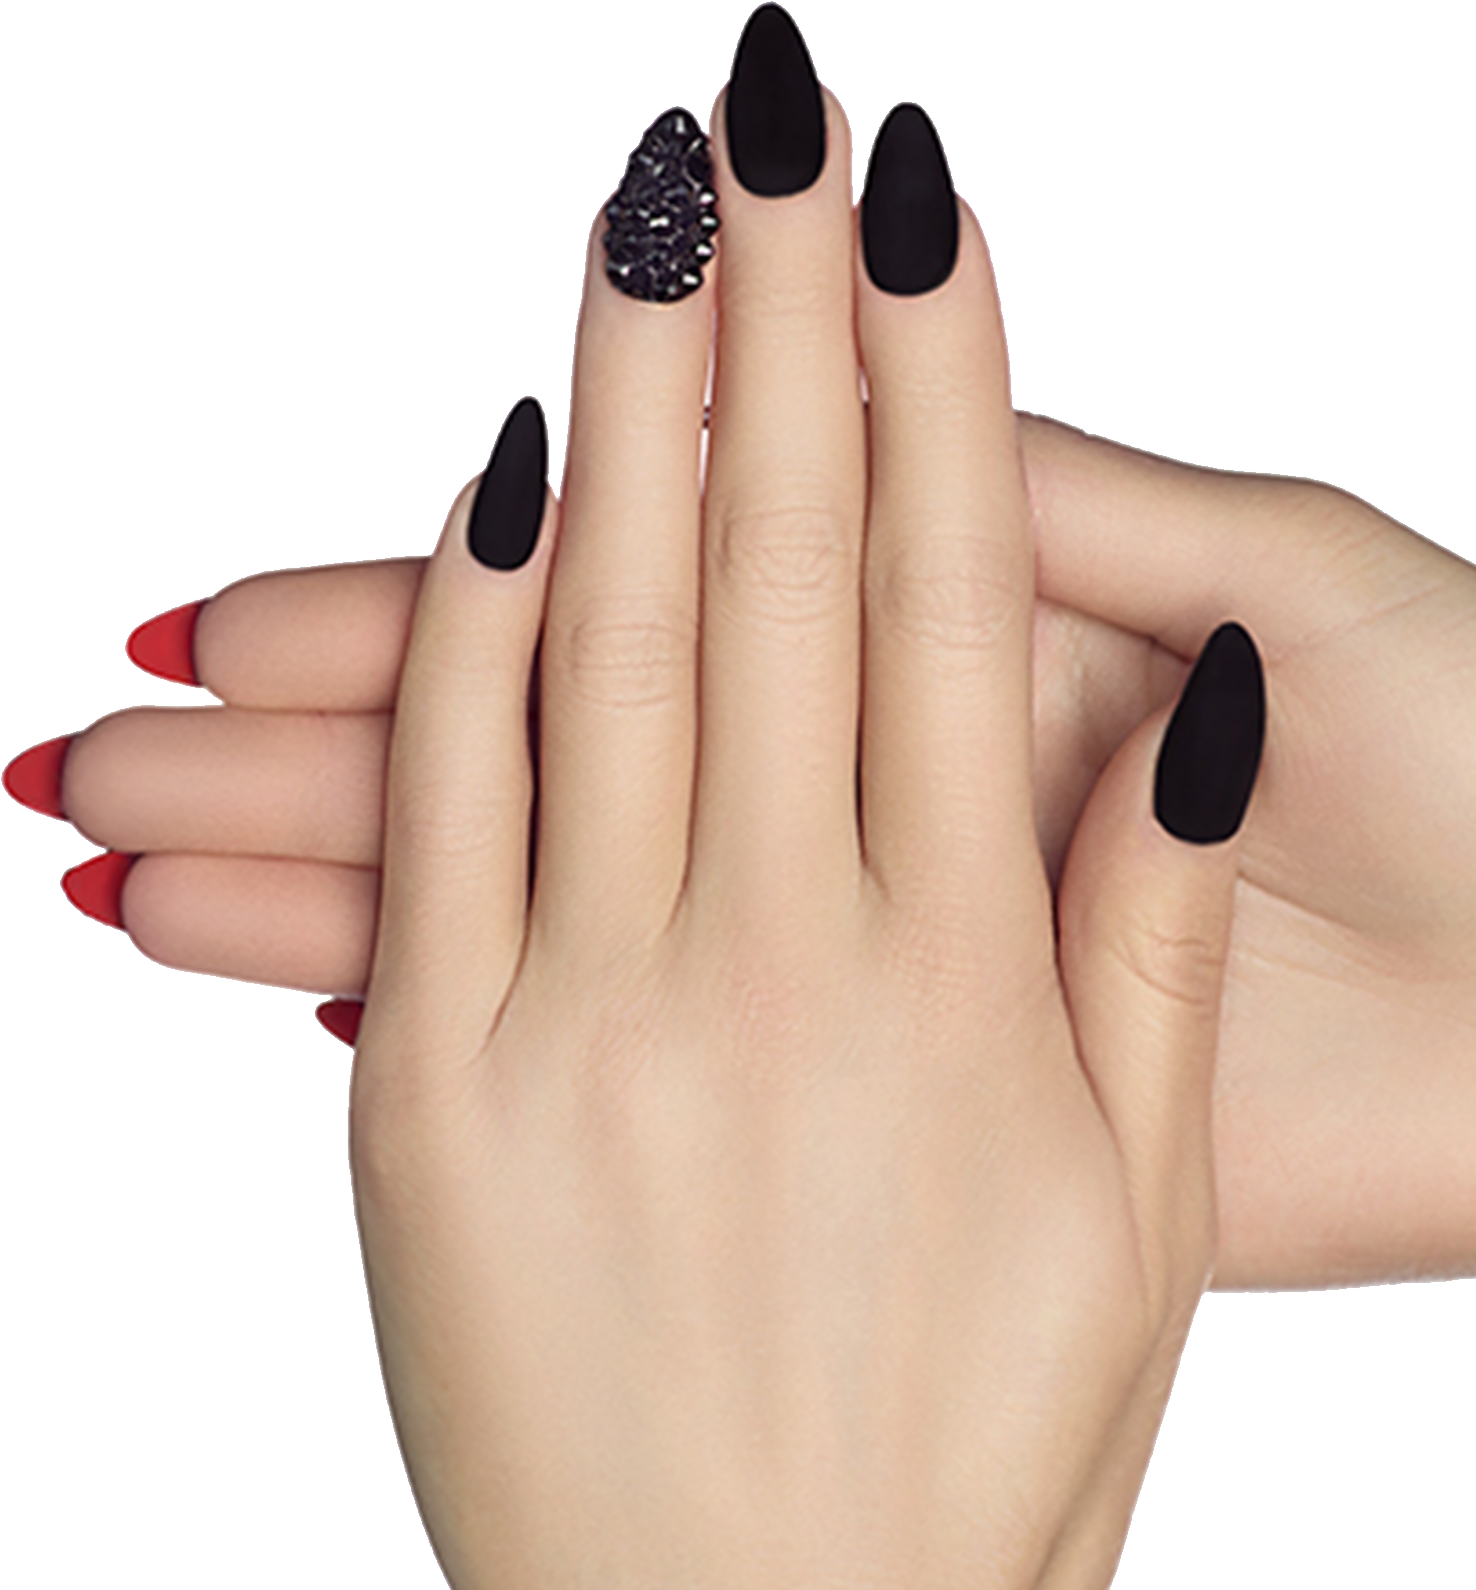 Download Nails PNG Image for Free.